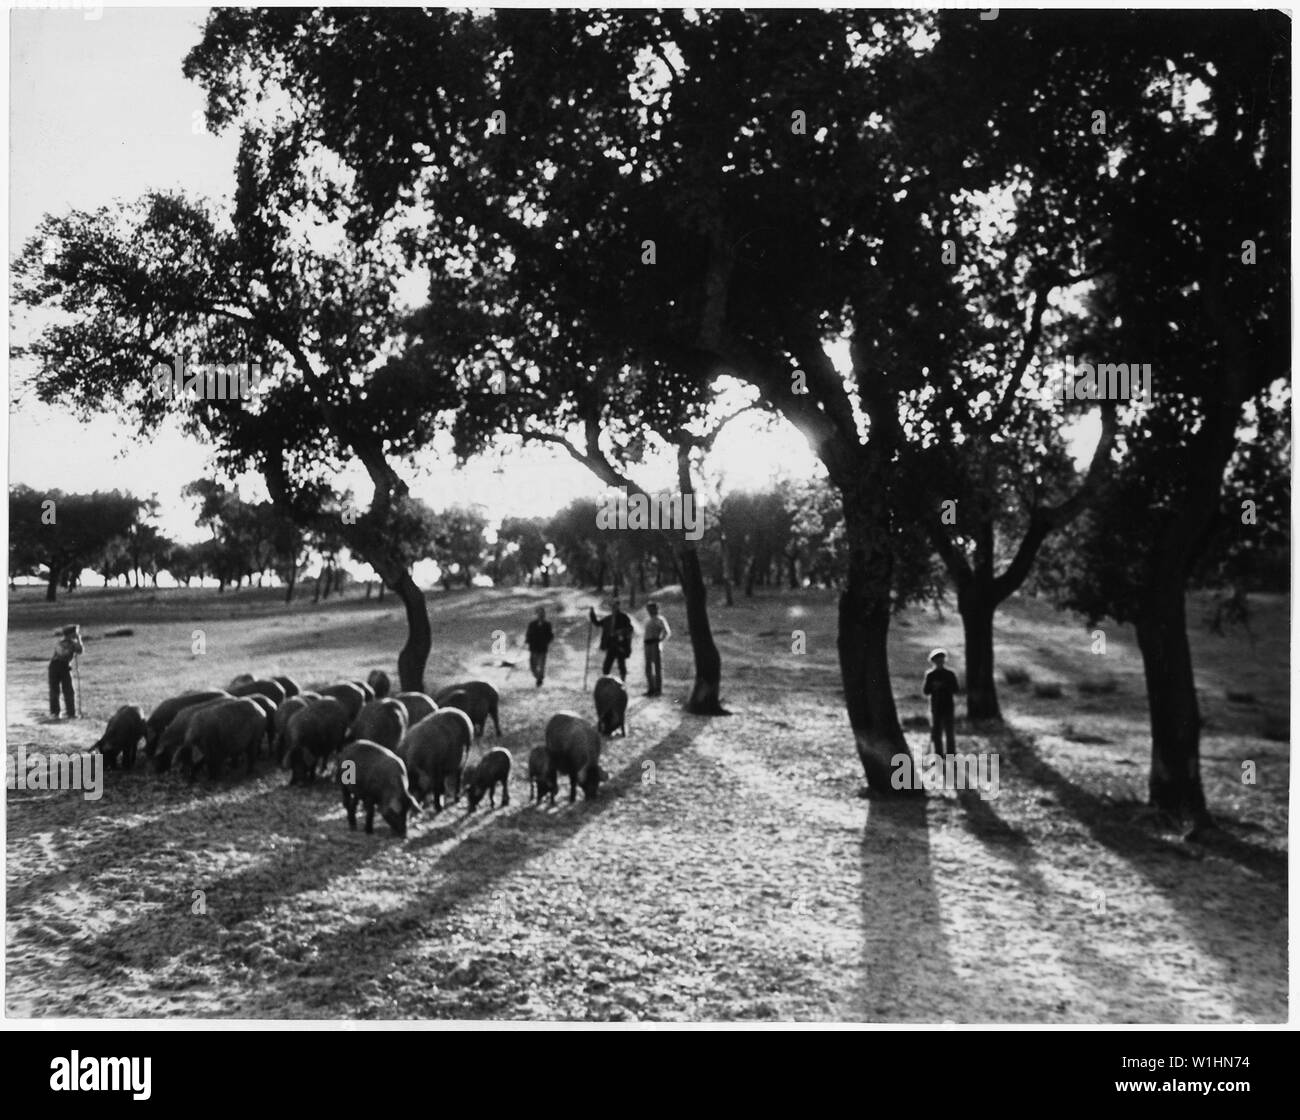 Portugal. Cork-tree groves near Vila Franca, the inland end of the city bay of Lisbon. Of all Portugal's exports, 22 percent in cork. Peasants herd their pigs in a cork grove here - Stock Image